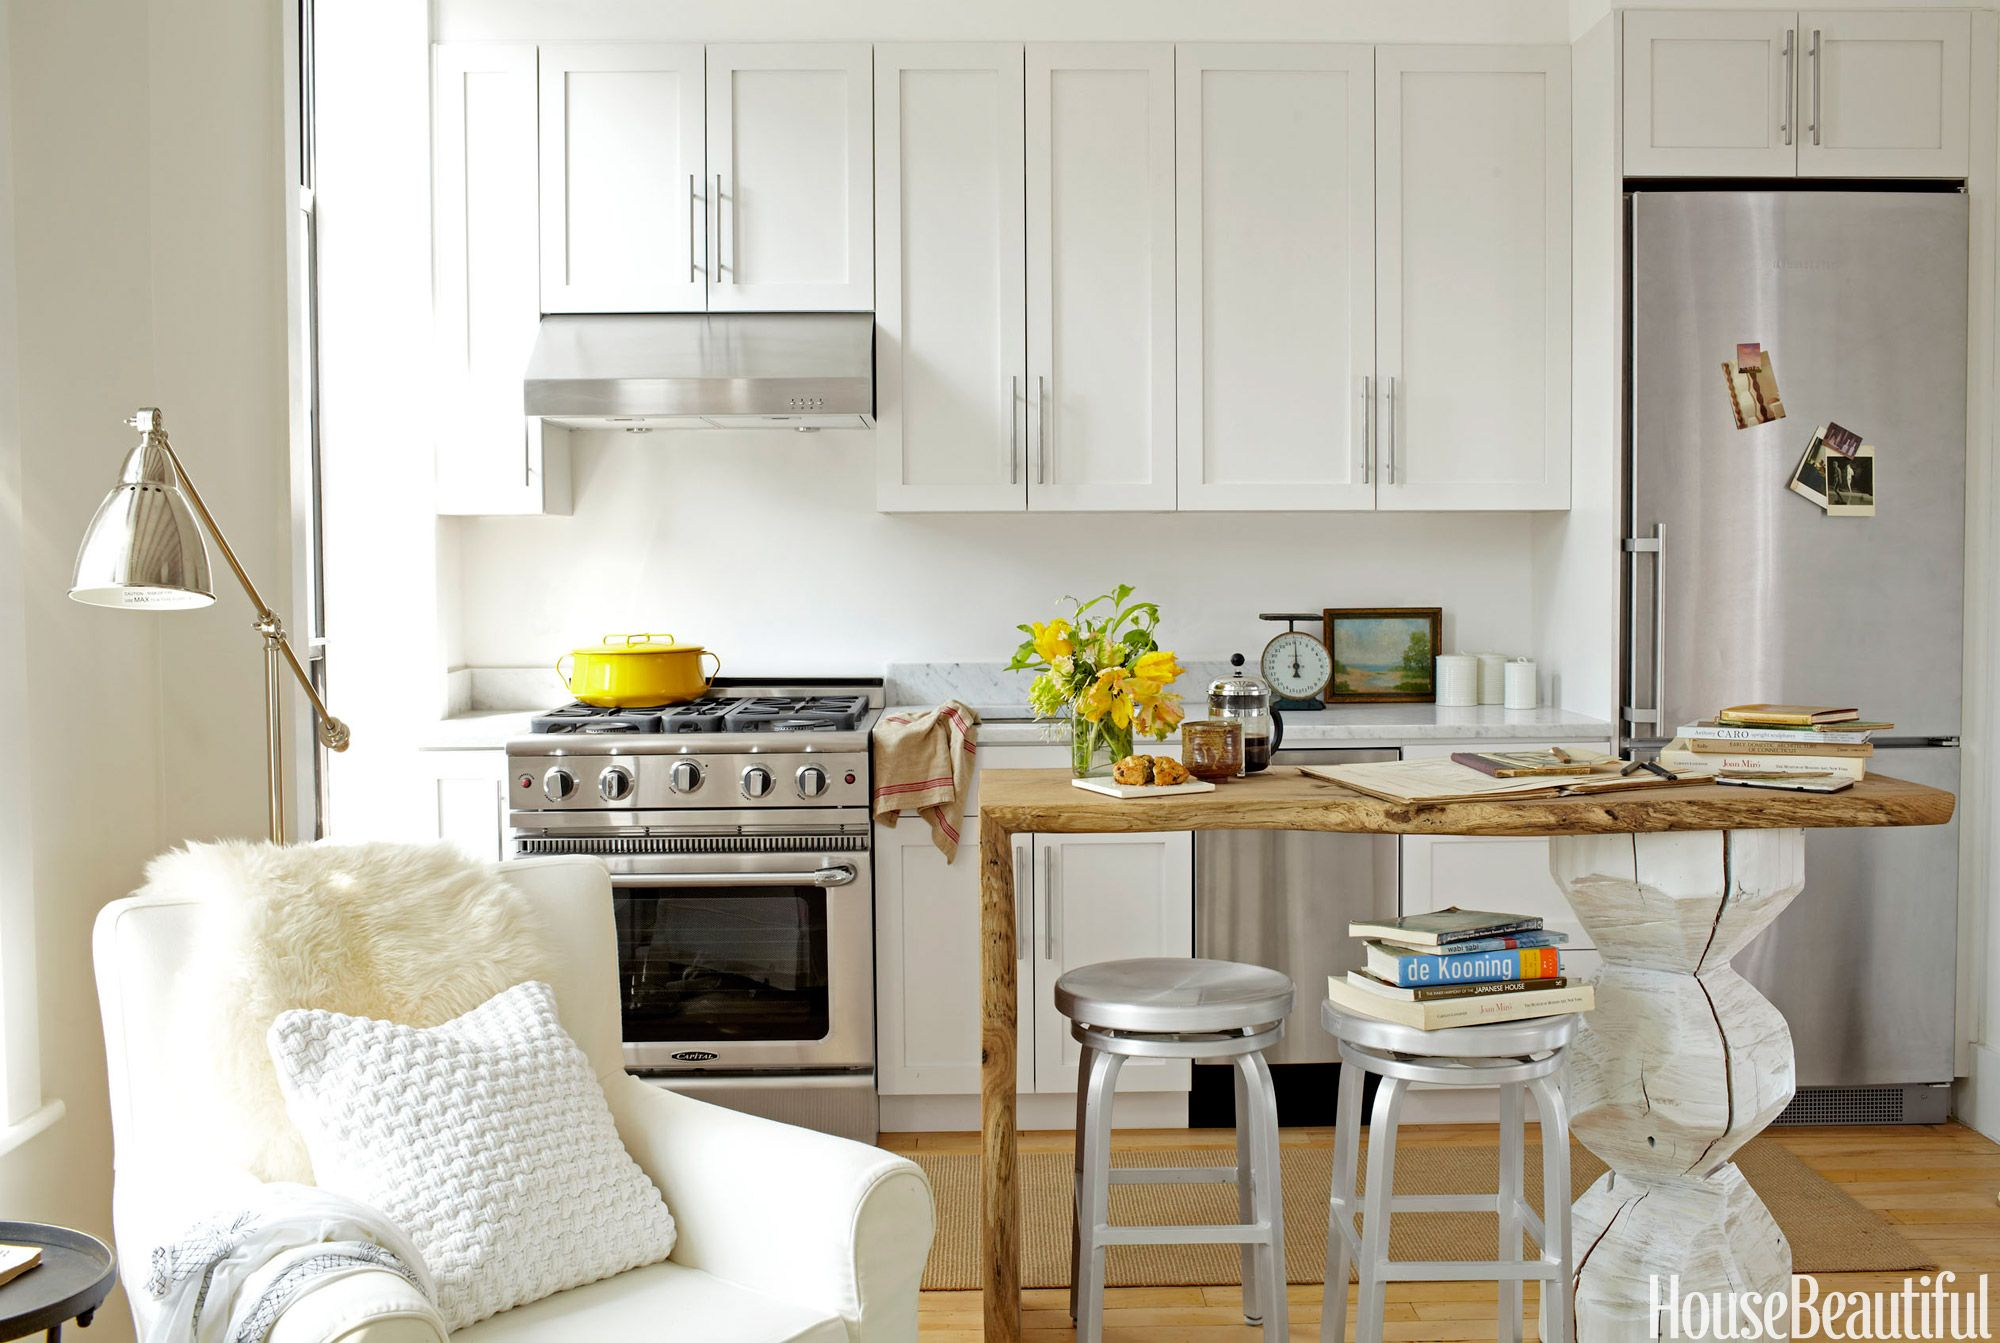 50 Best Small Kitchen Design Ideas - Decor Solutions for ... on Best Small Kitchens  id=35305